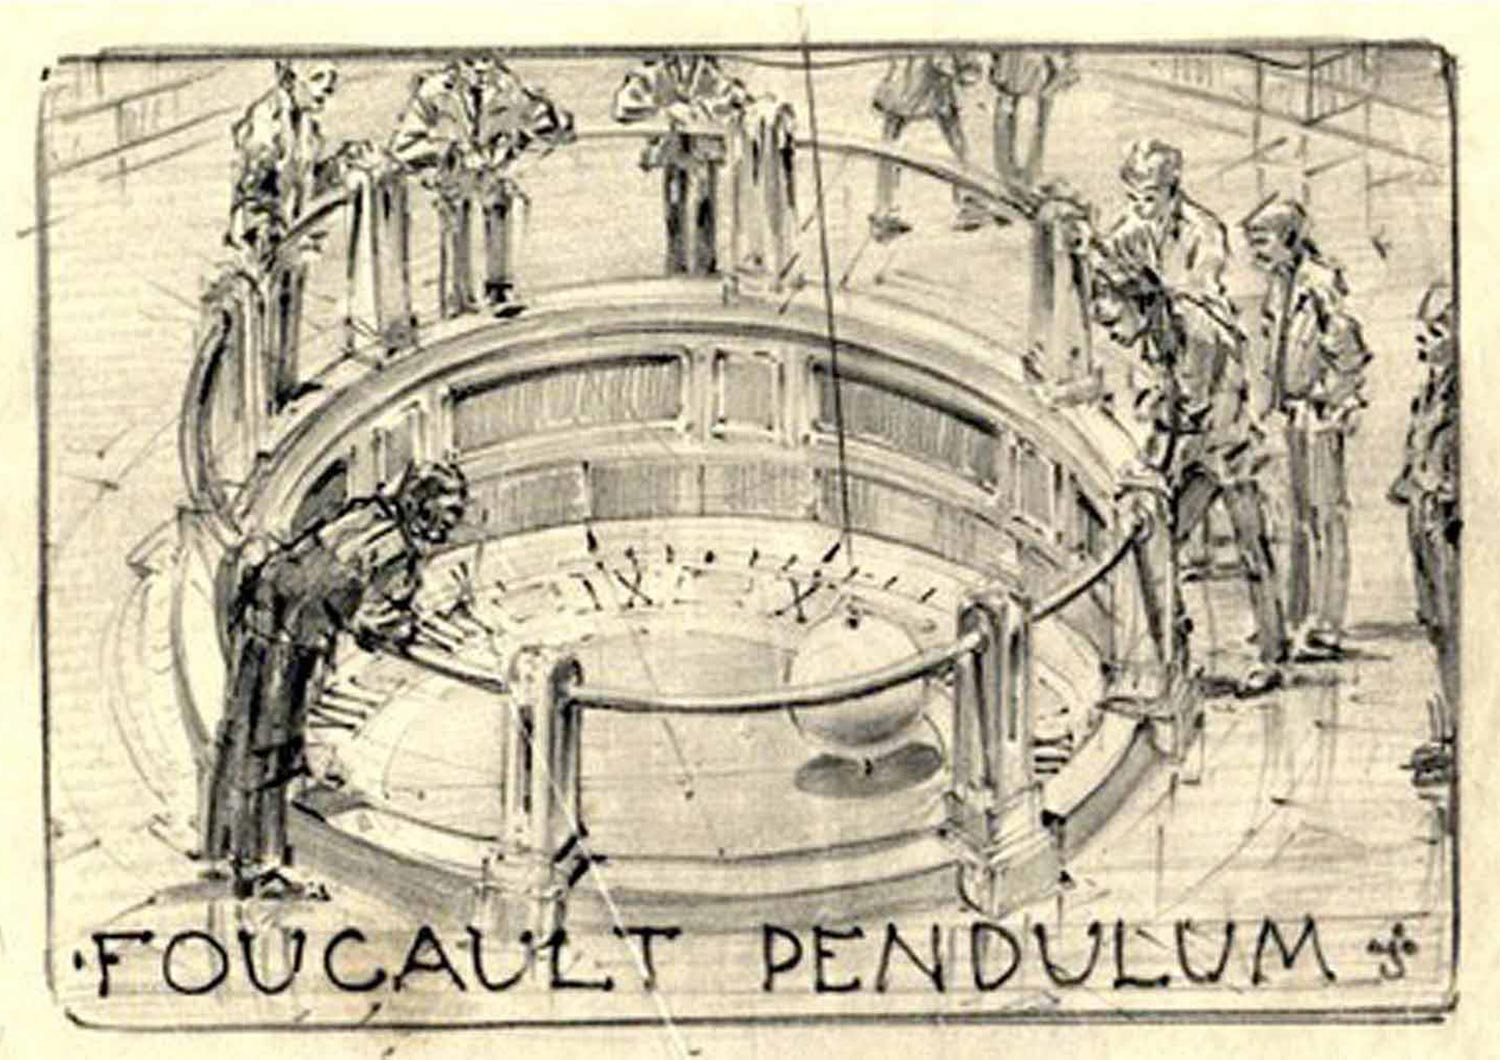 A Russell W. Porter concept drawing (ca. 1932) of the Foucault Pendulum in the Hall of Science. (Original drawing, Griffith Observatory collection). Commons, https://interestingengineering.com/the-device-that-lets-you-see-the-earth-turn-the-foucault-pendulum